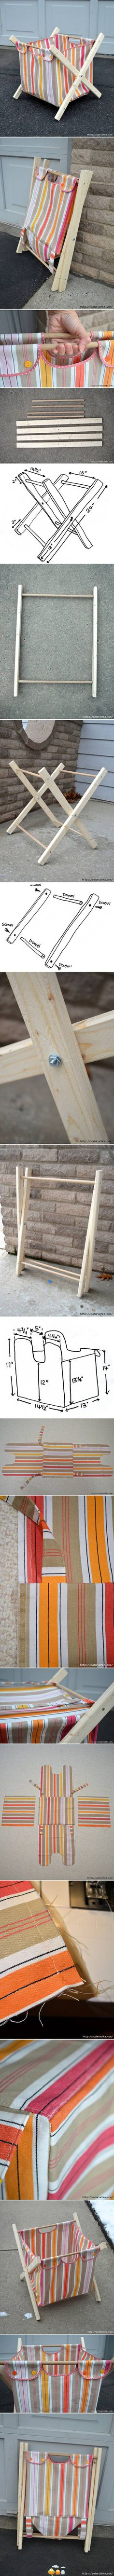 Collapsible project basket